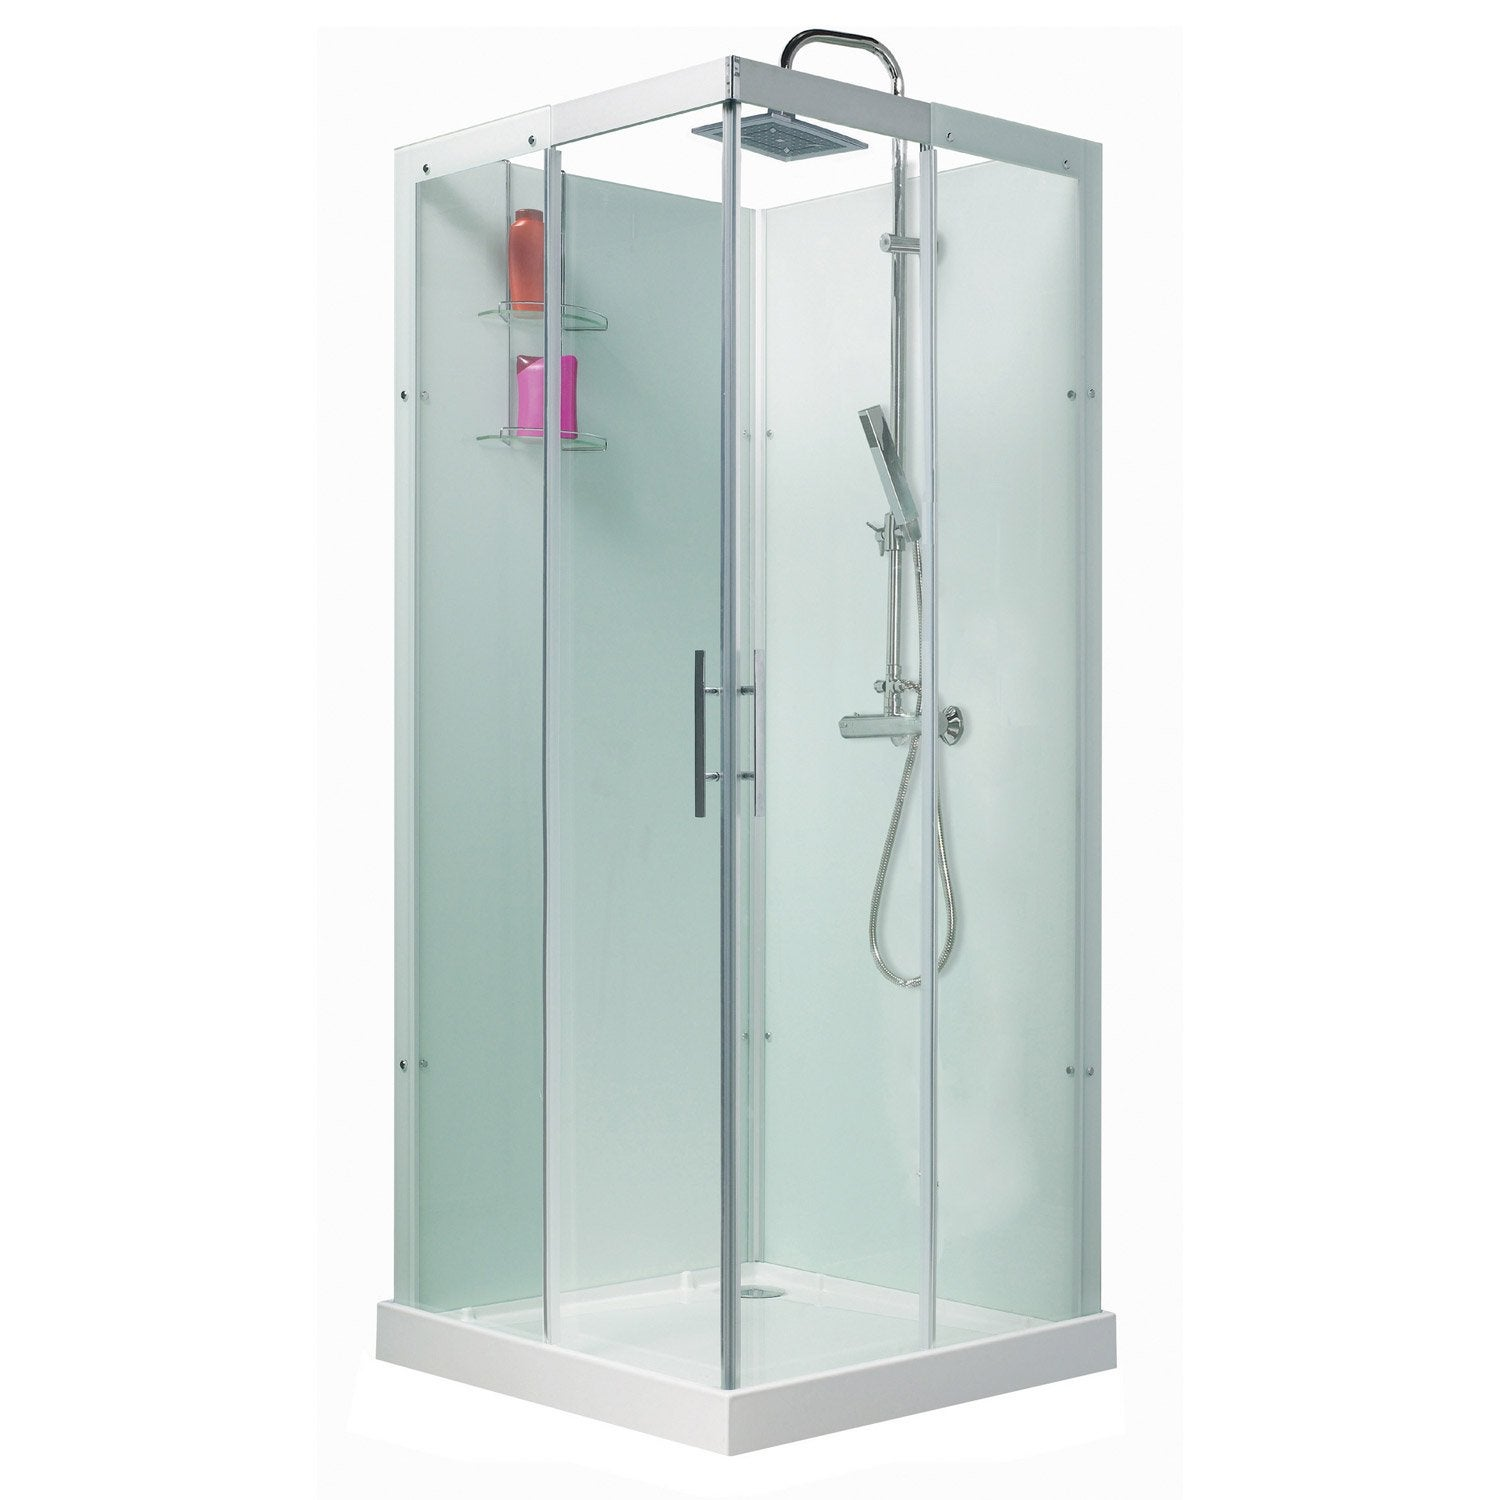 Cabine de douche thalaglass 2 simple thermostatique carr 80x80 cm leroy me - Cabine de douche simple ...